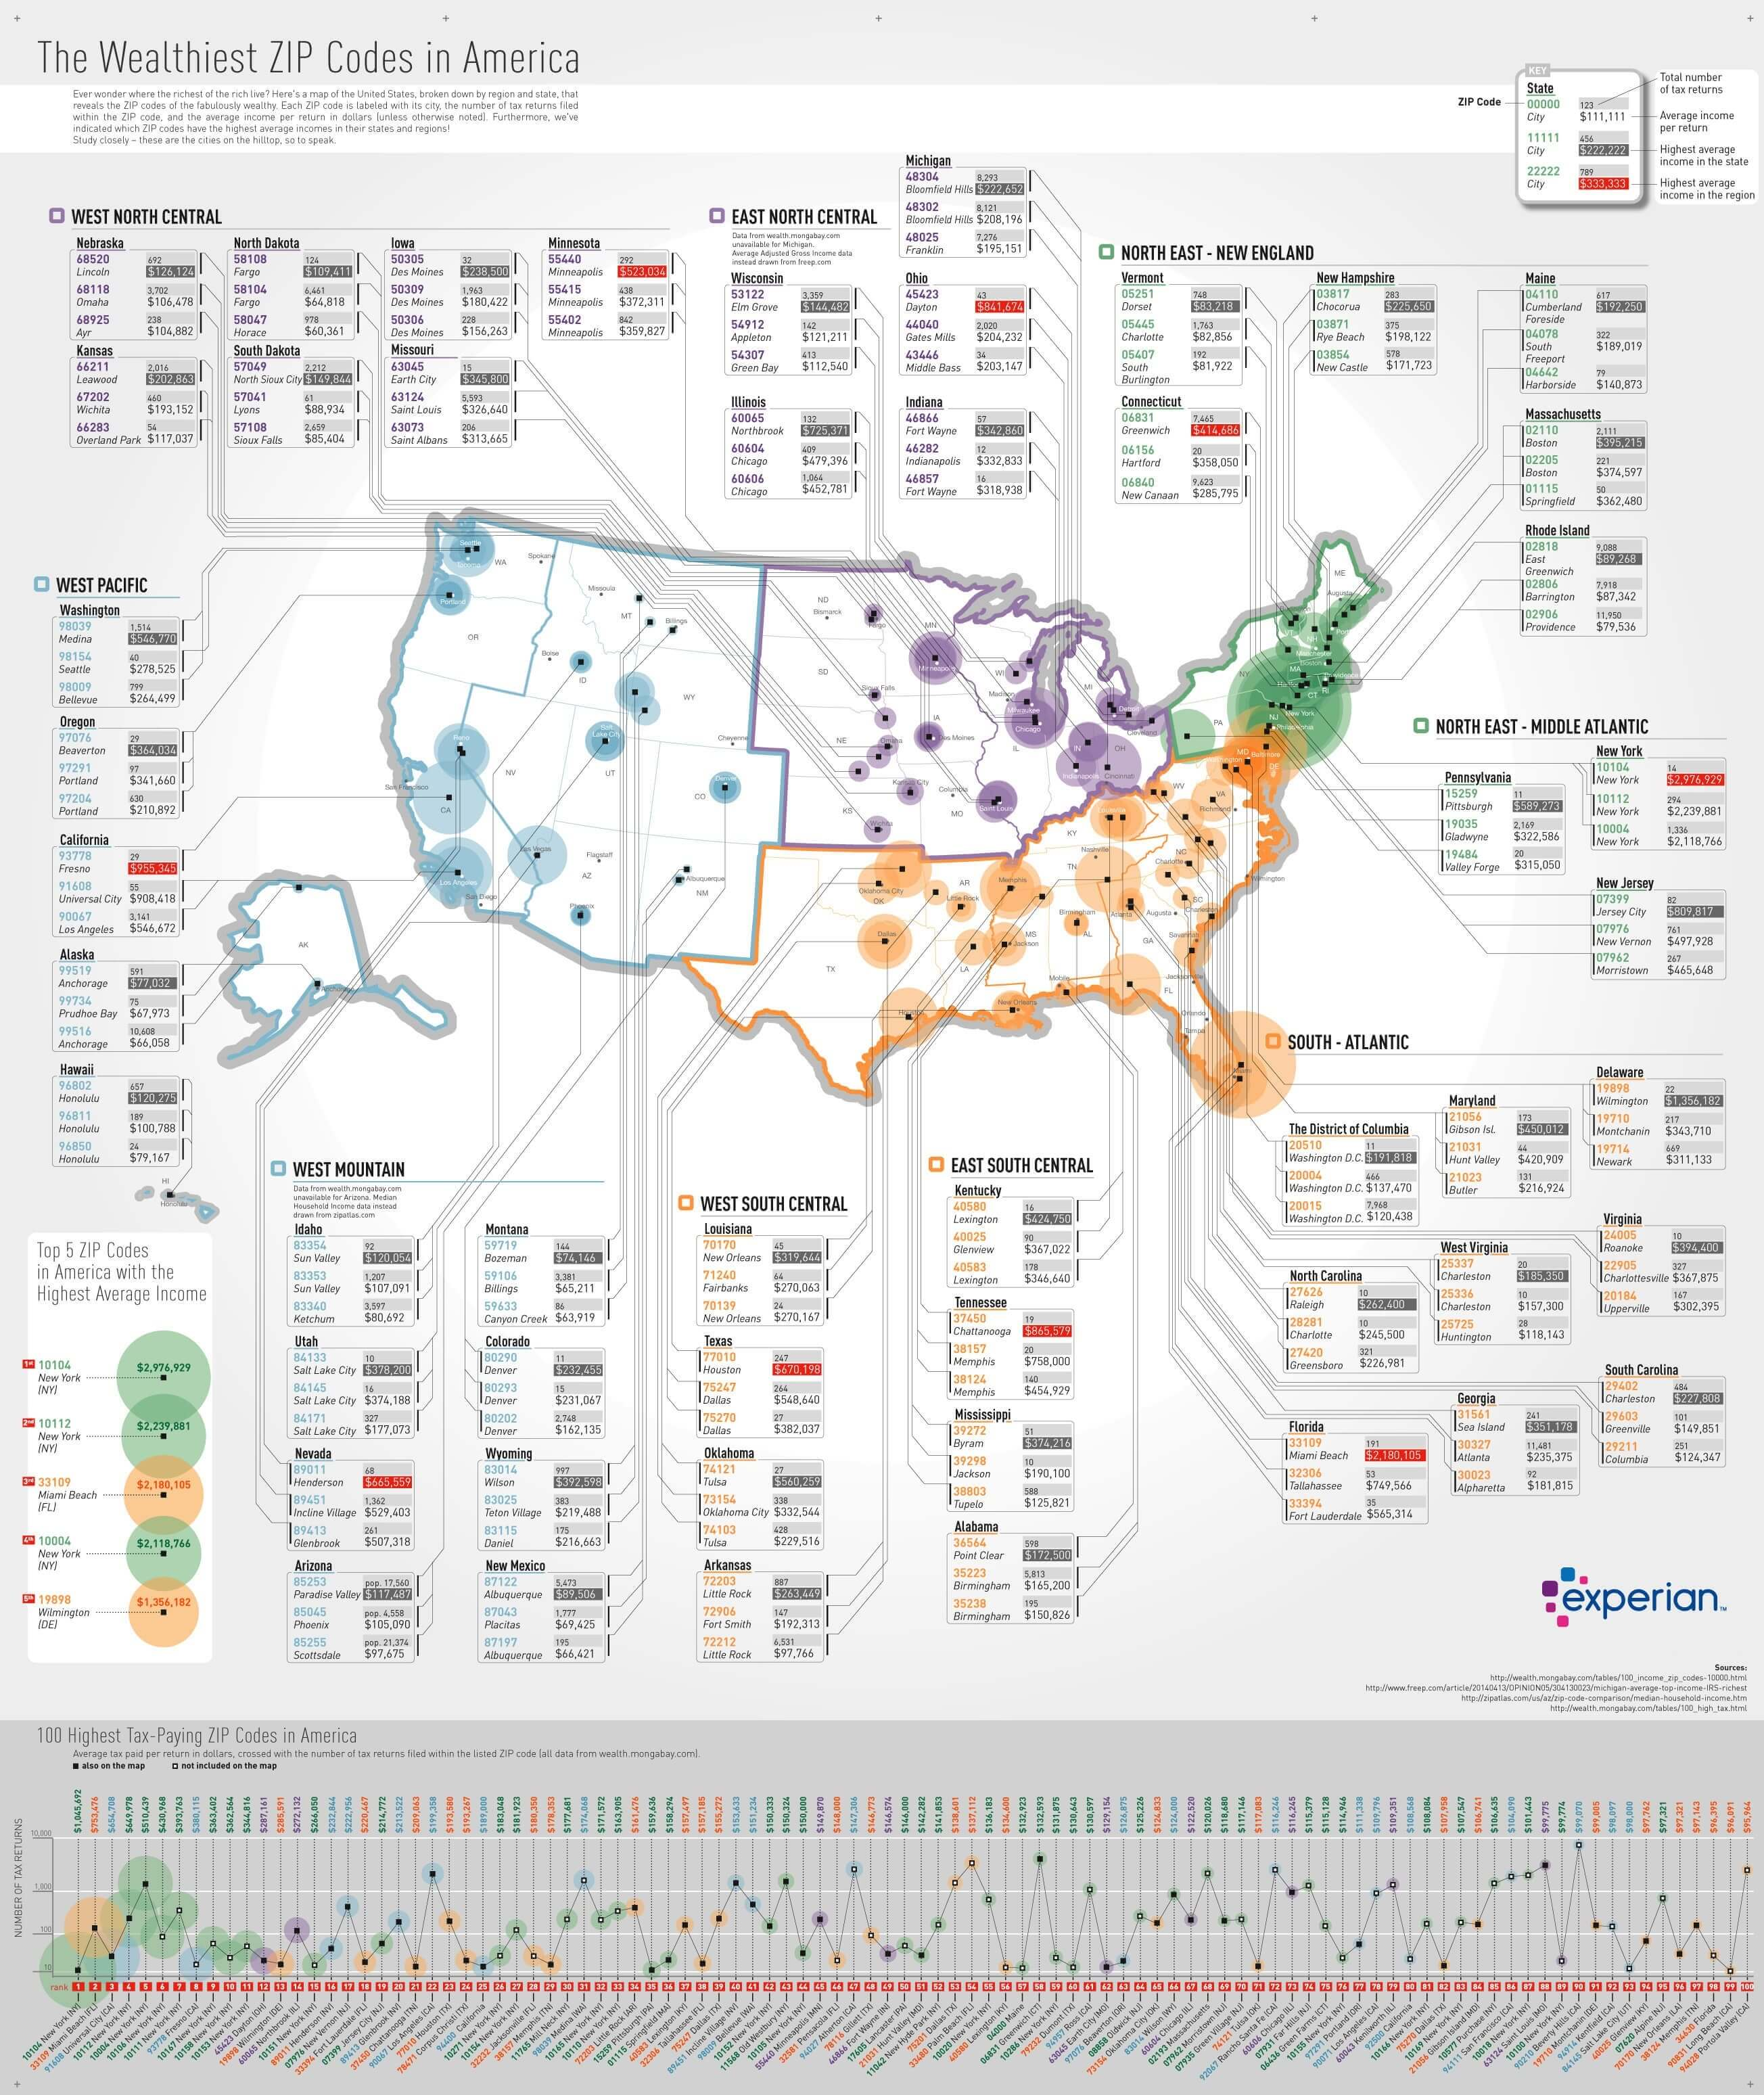 How Do We Map New Orleans Let Us Count The Ways NOLAcom How Do We - Us congressional districts map by zip code